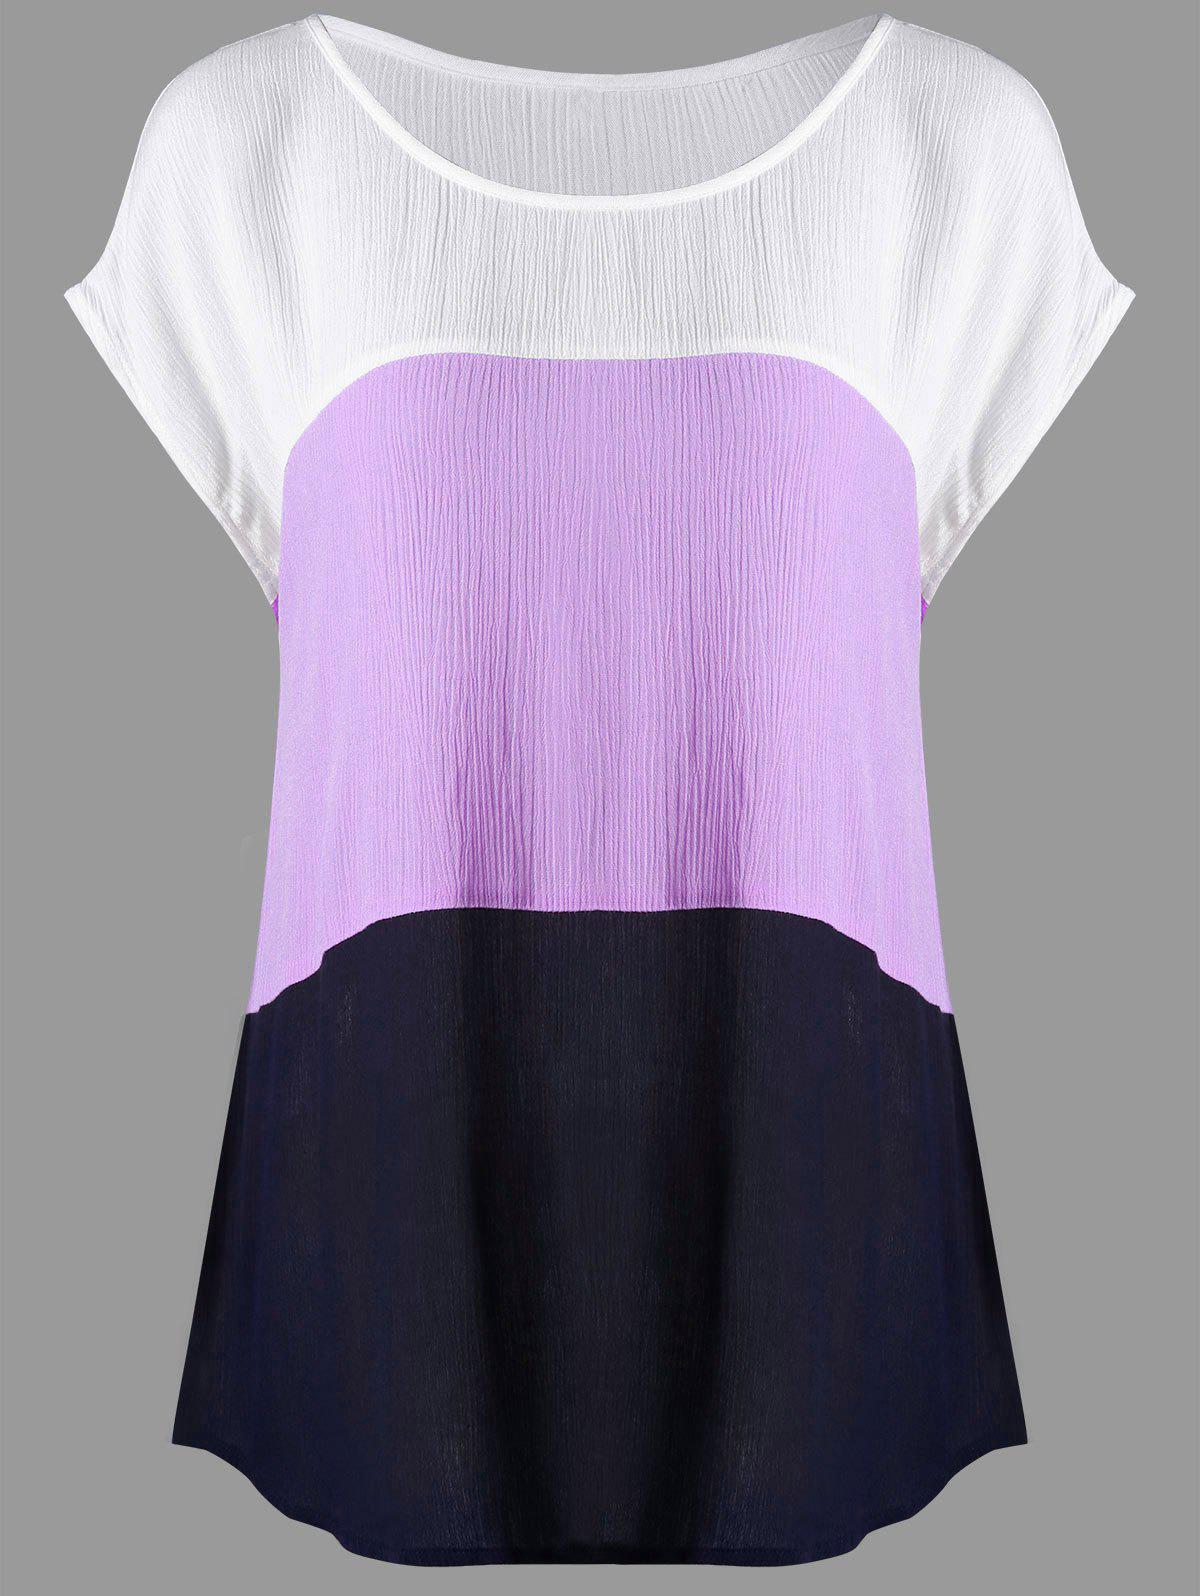 Plus Size Crinkle Cap Sleeve BlouseWOMEN<br><br>Size: 2XL; Color: WHITE + PURPLE; Material: Rayon; Shirt Length: Long; Sleeve Length: Short; Collar: Scoop Neck; Style: Casual; Season: Summer; Pattern Type: Solid; Weight: 0.1900kg; Package Contents: 1 x Blouse;